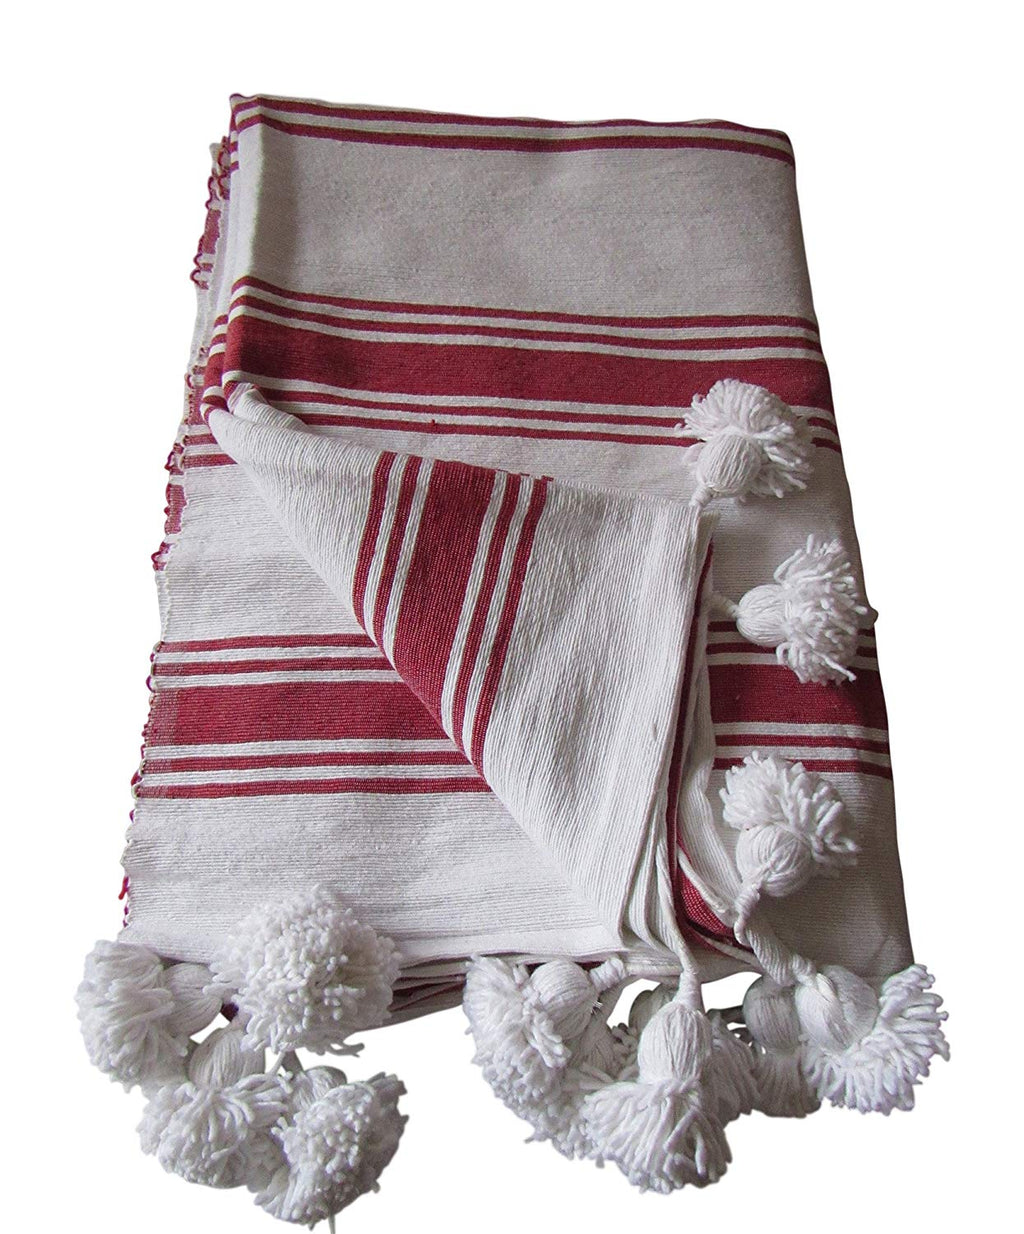 Handcraft Collection Handspun Moroccan Pom Pom Throw Blanket White with Red Stripes, 100% Berber Wool, Handmade by Skilled Craftspeople,